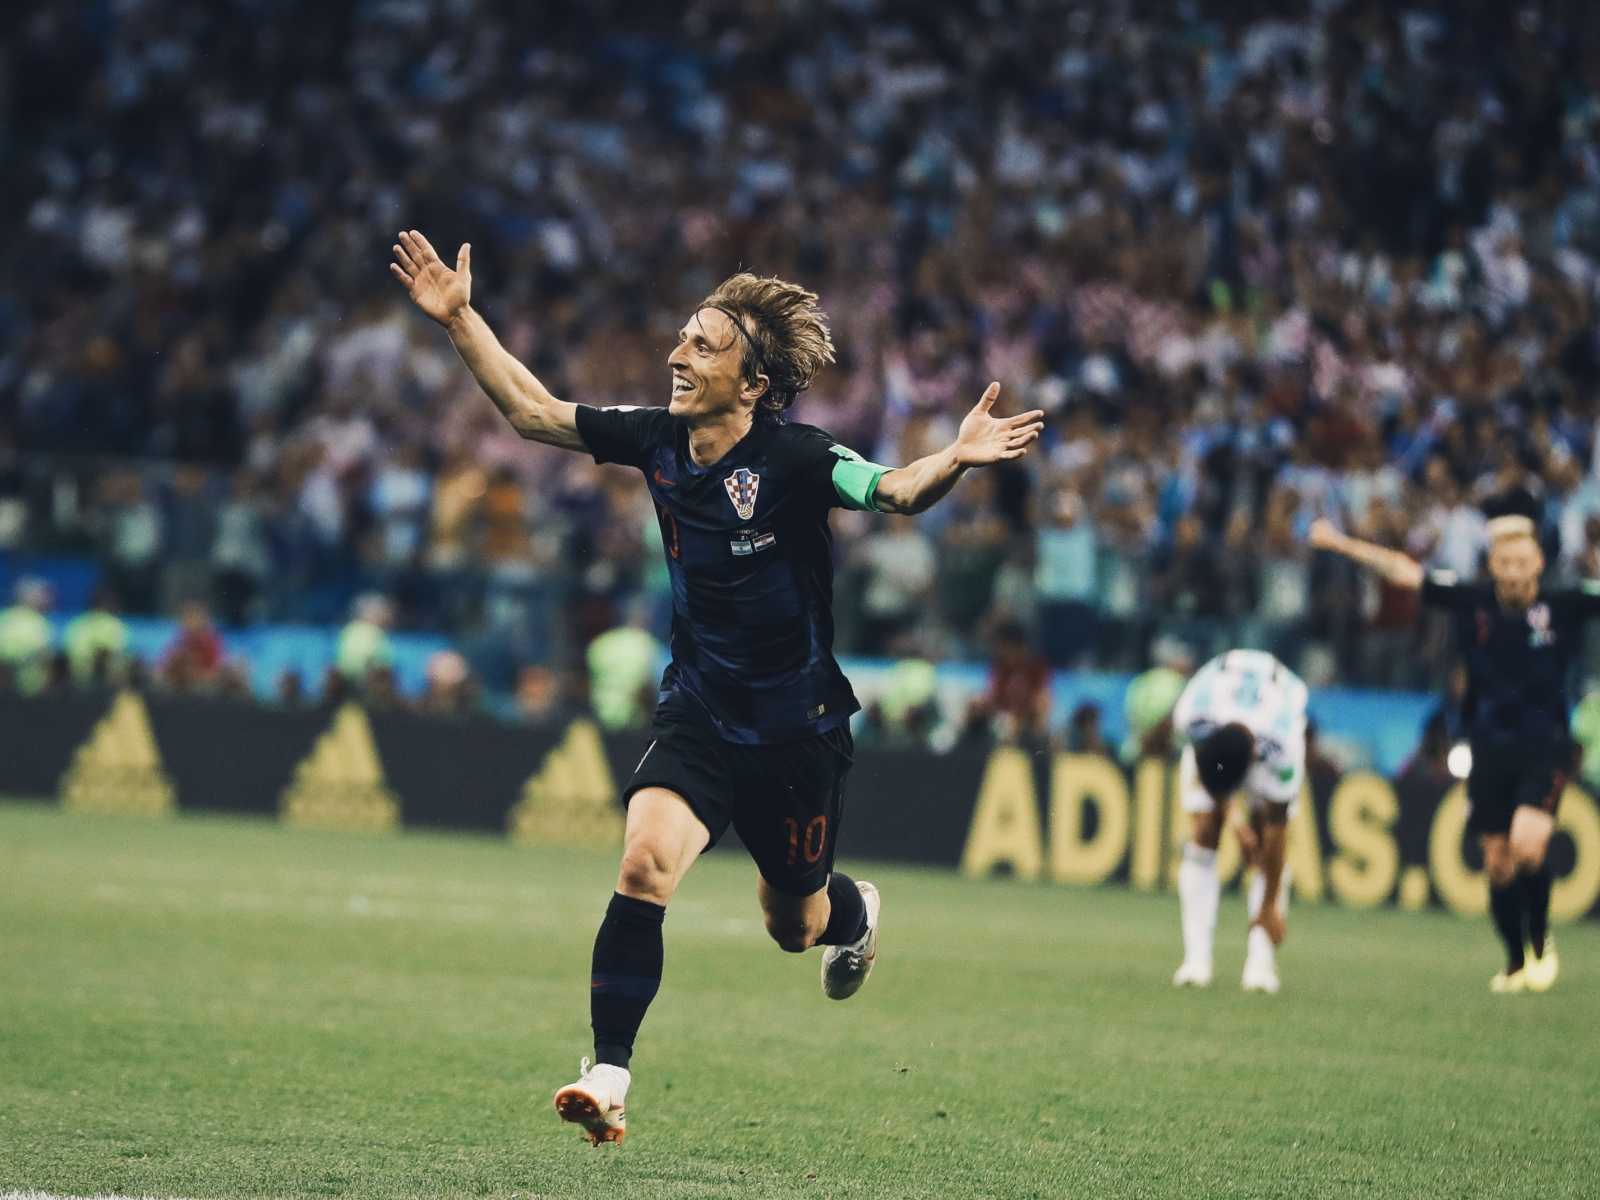 d5e7d48ac1c The making of Luka Modrić from war-torn Croatia to the world s best  midfielder